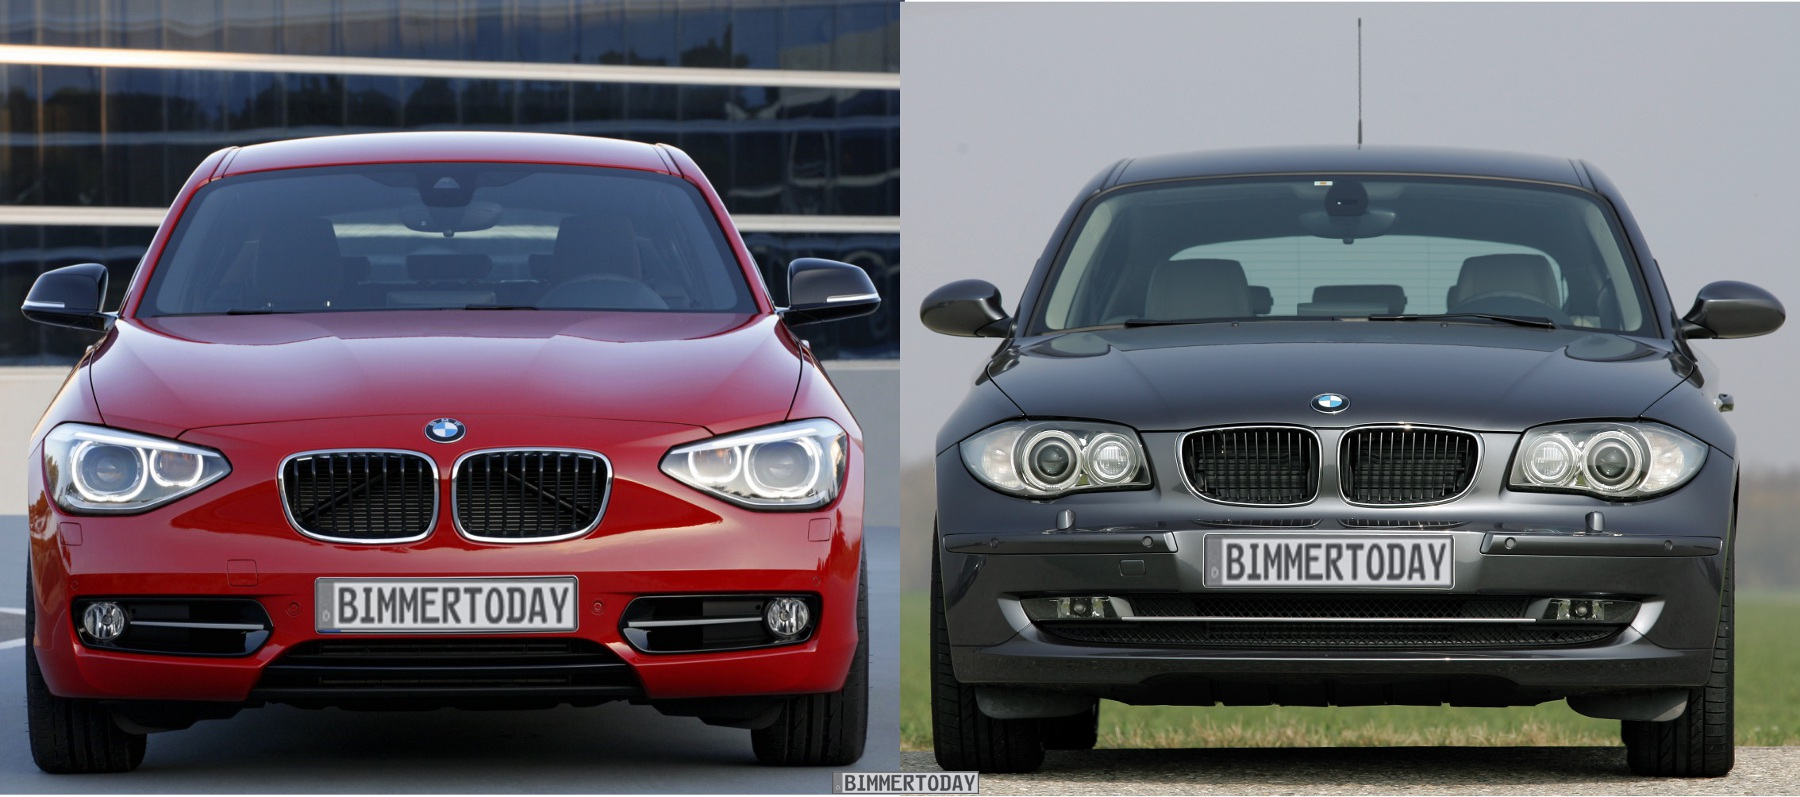 2012 Bmw 1 Series Vs E87 1 Series